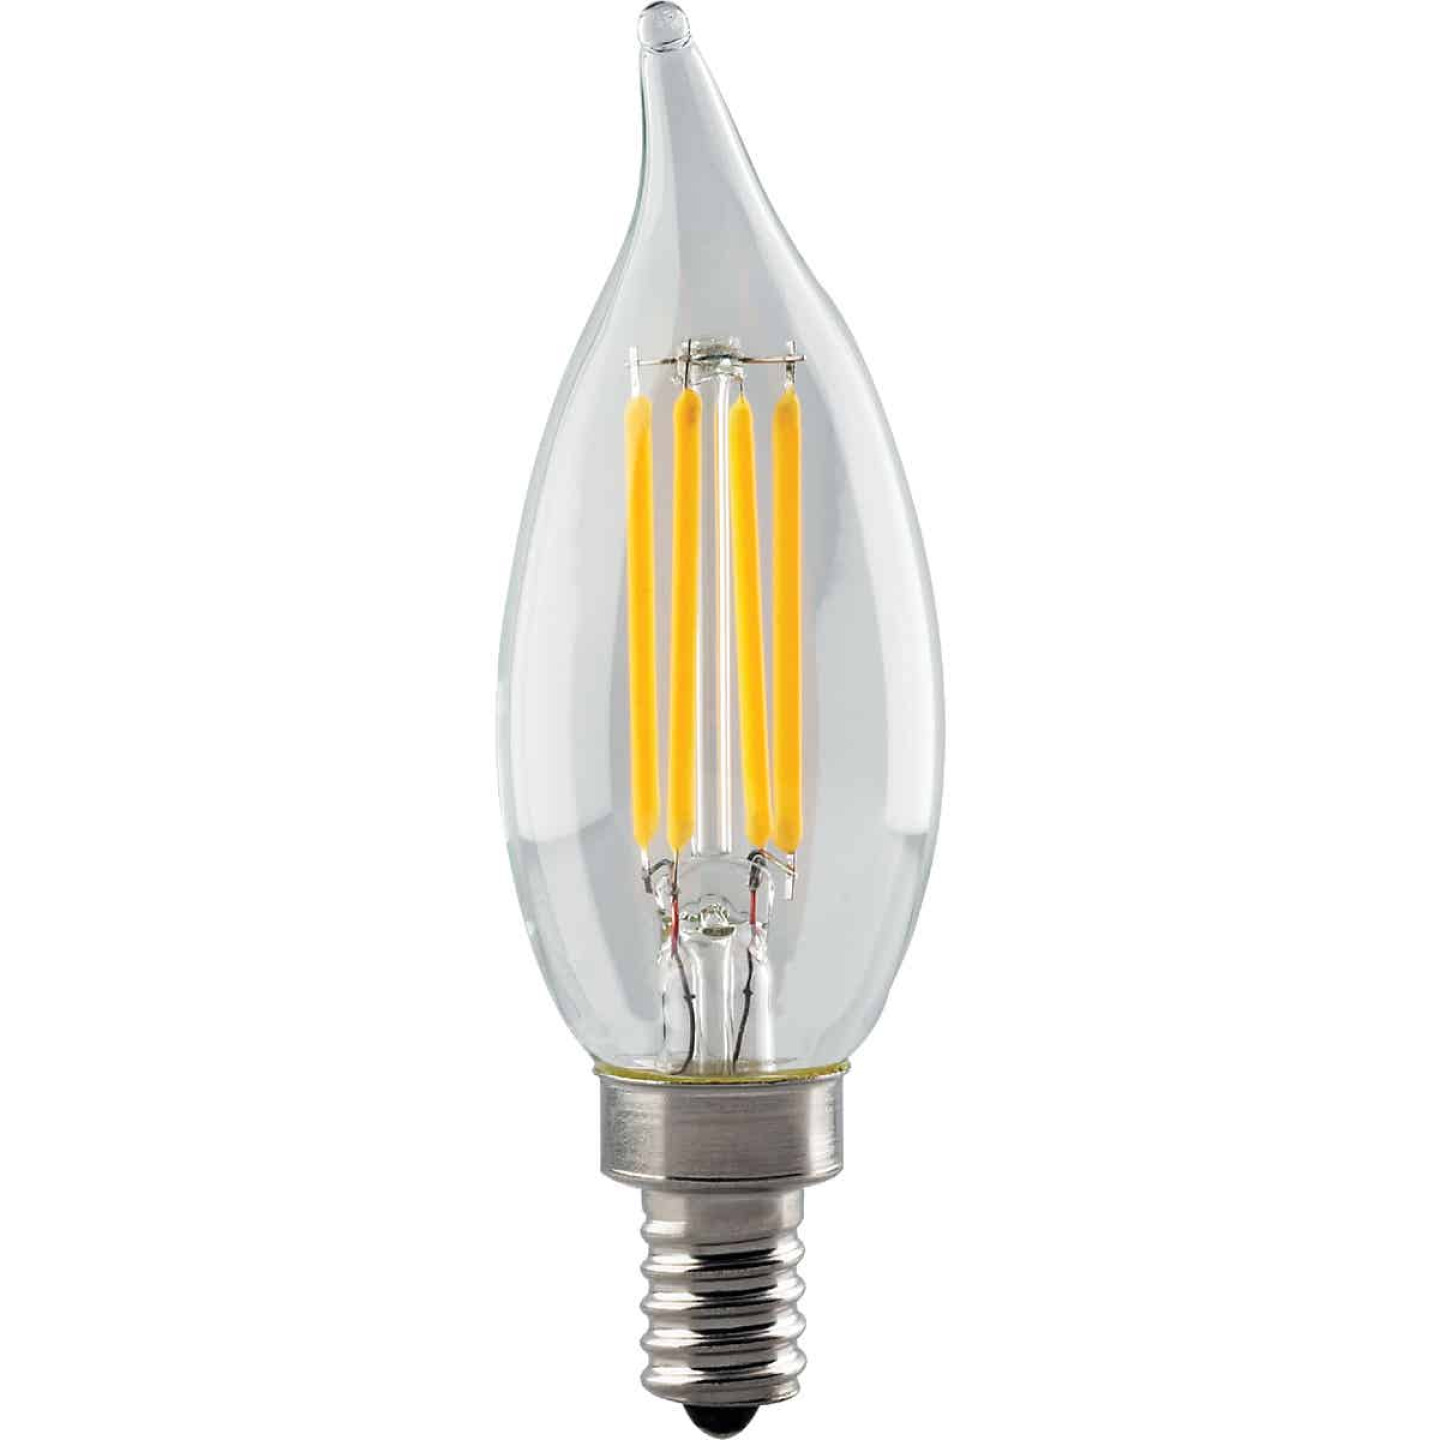 Satco 40W Equivalent Warm White CA11 Candelabra LED Decorative Light Bulb Image 1